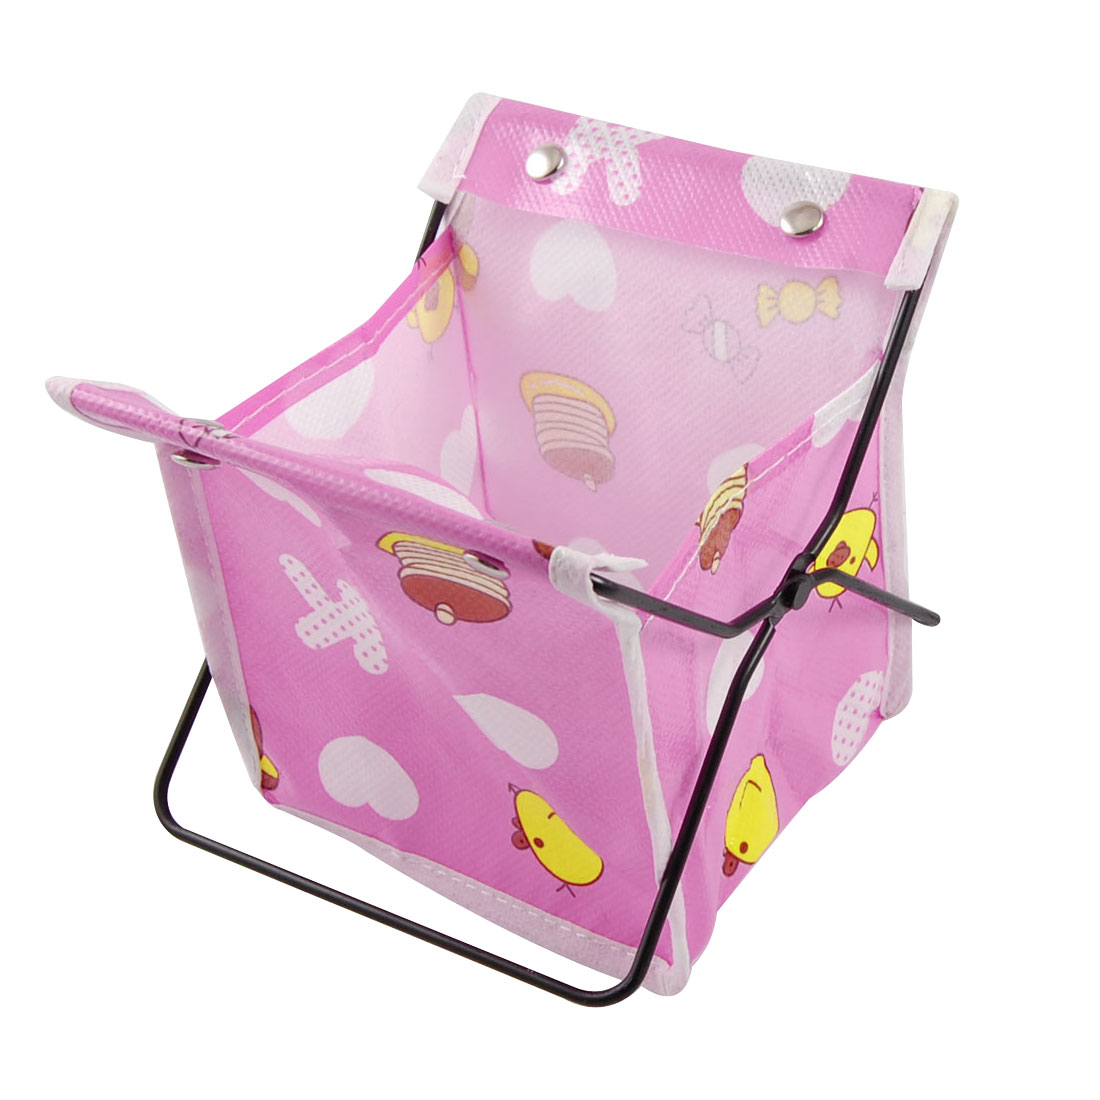 Mini Fuchsia Folding Gadgets Holder White Hearts Decor Bag Storage Rack